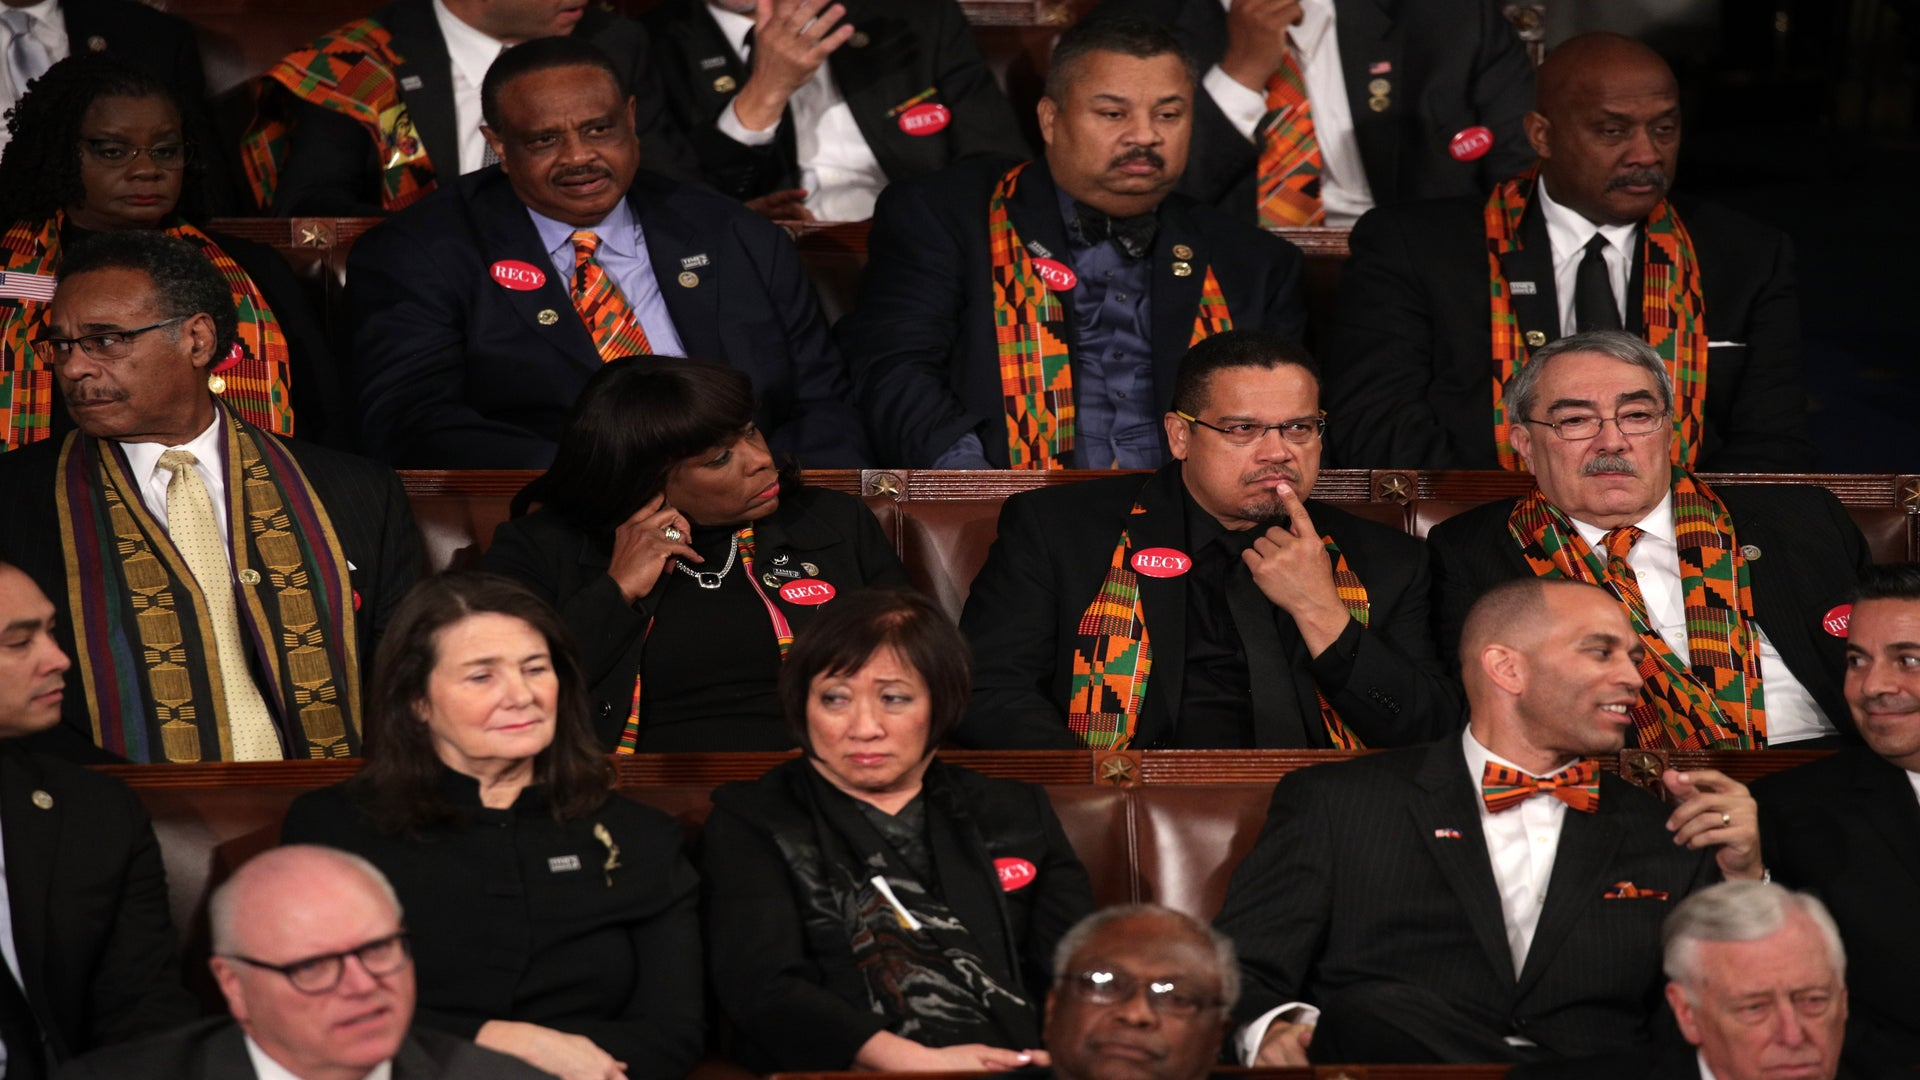 CBC Members Wore Kente Cloth, Recy Taylor Pins To Trump's State Of The Union Address